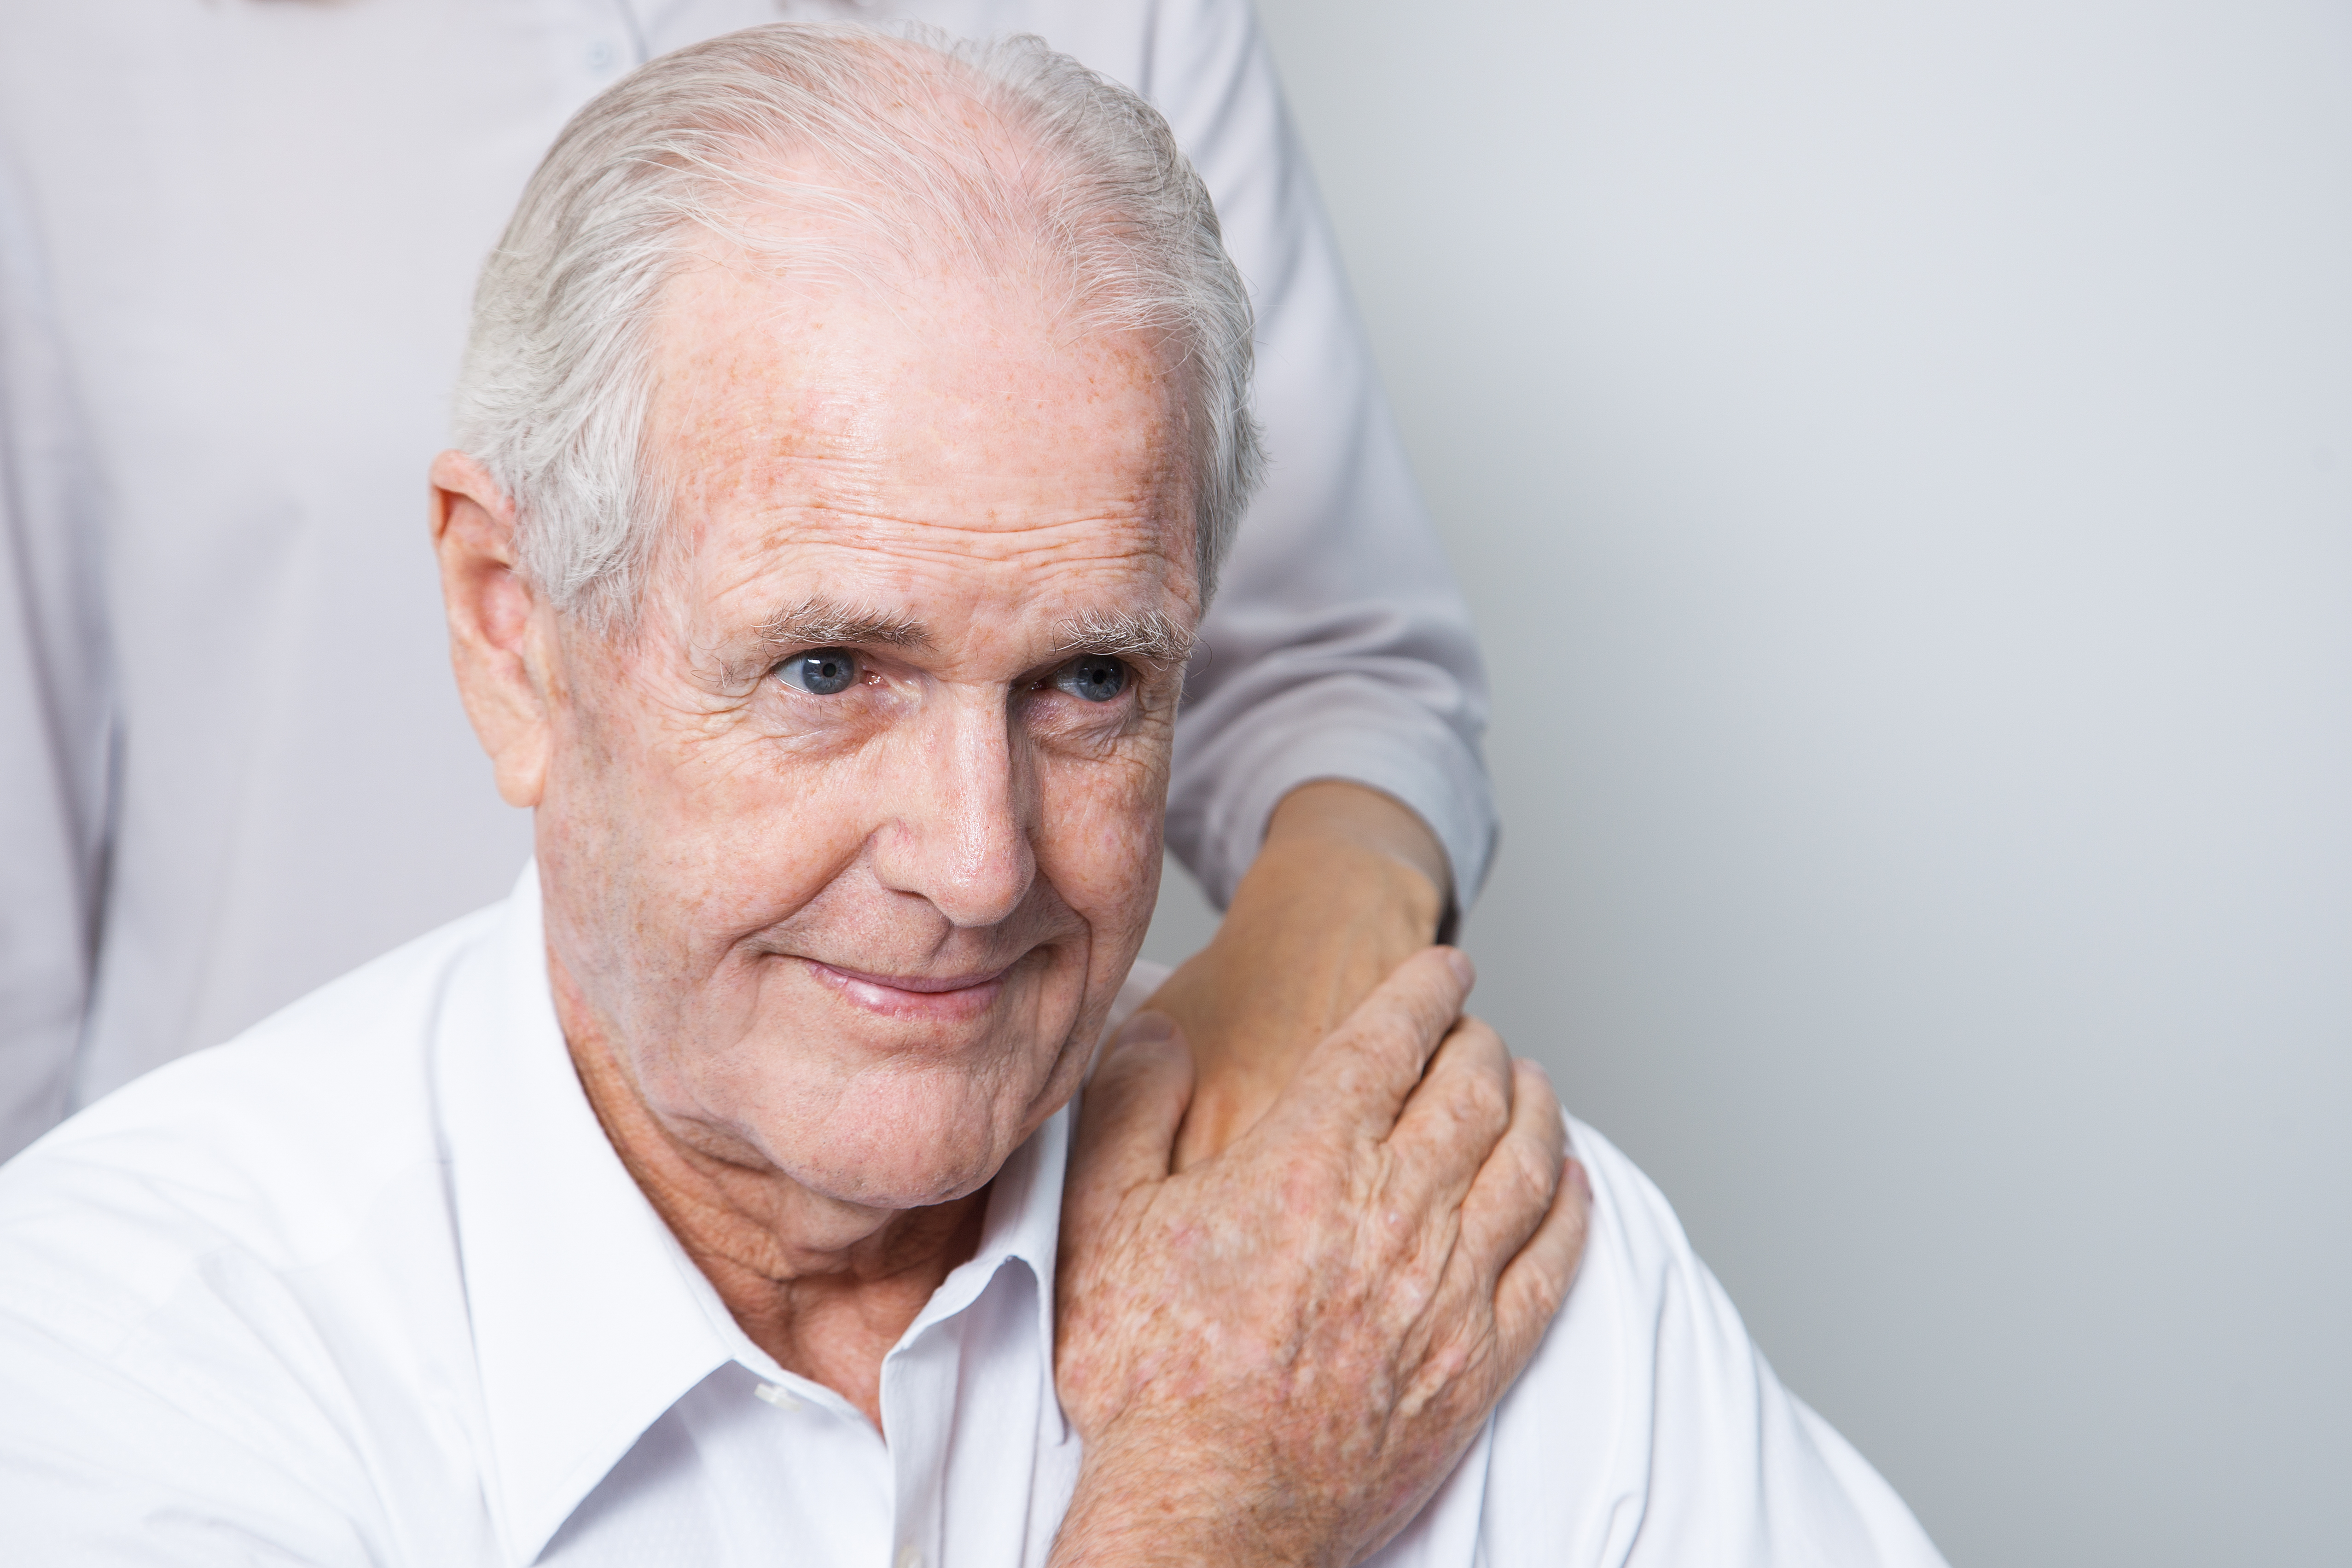 Closeup of content senior man and unrecognizable woman putting hand on his shoulder. Isolated view on white background.